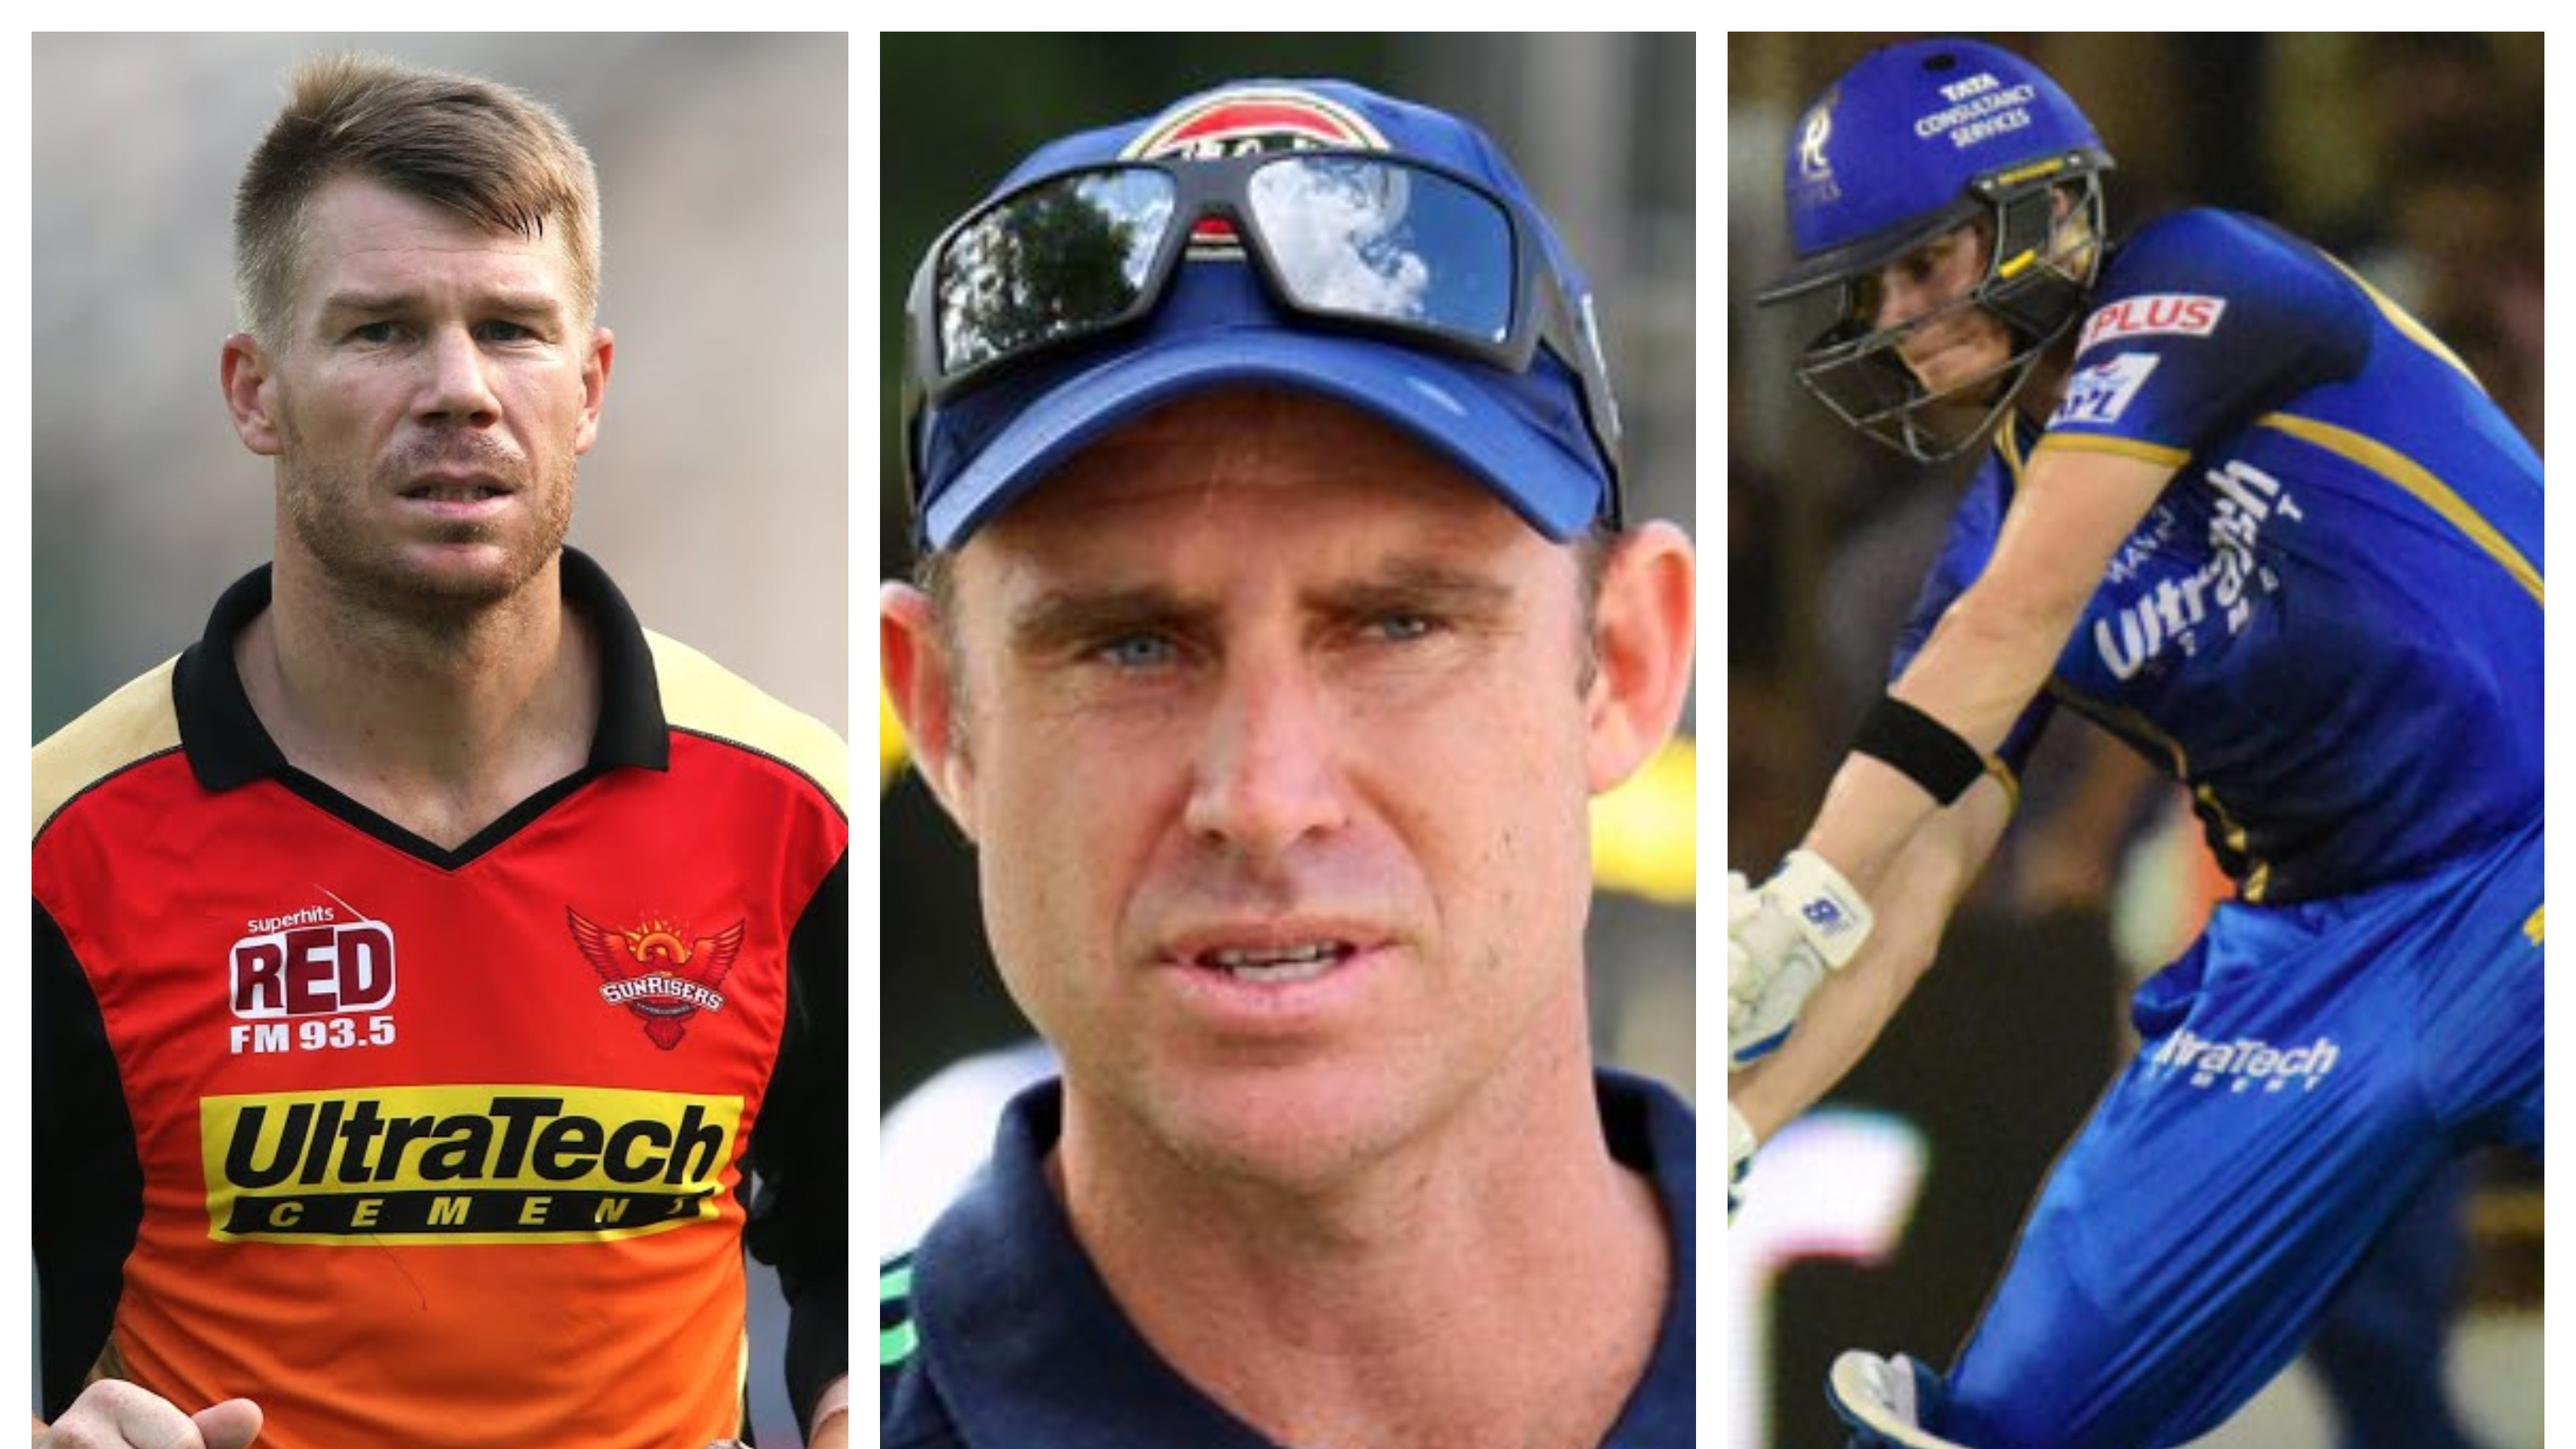 CWC 2019: Hayden backs Smith and Warner to play the World Cup irrespective of their IPL form